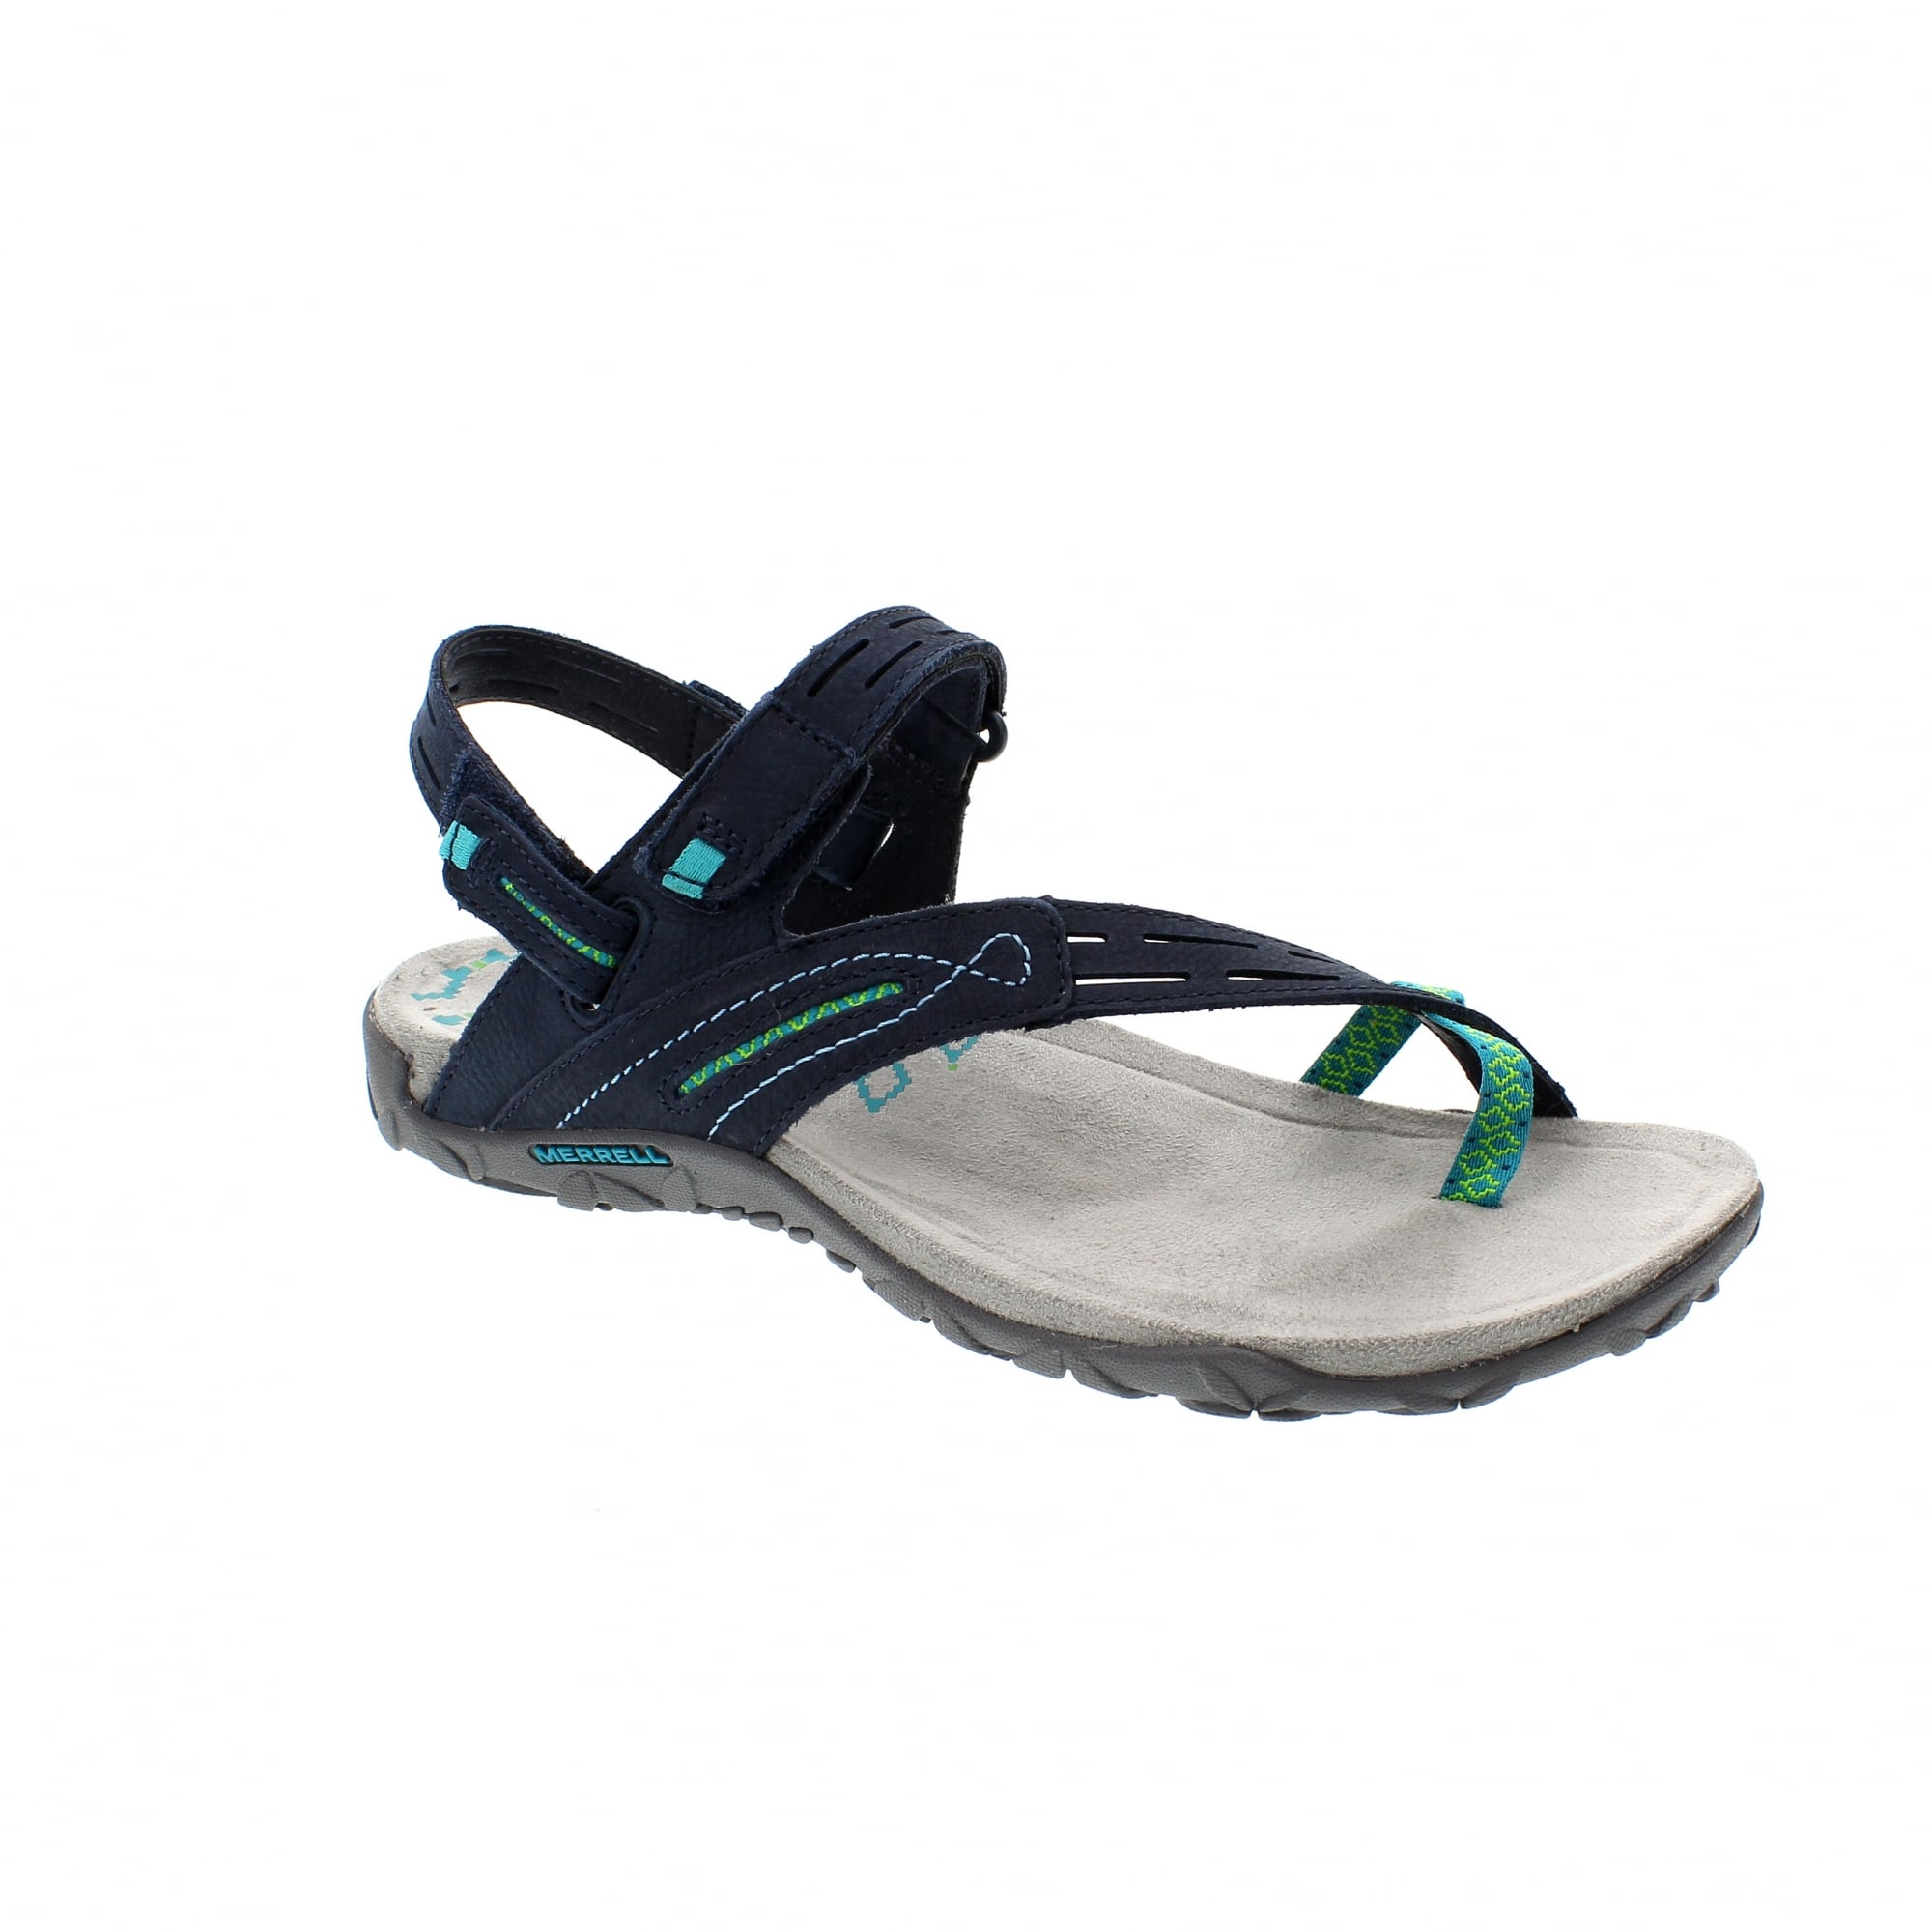 merrell shoes and sandals sale 3003f 4807c